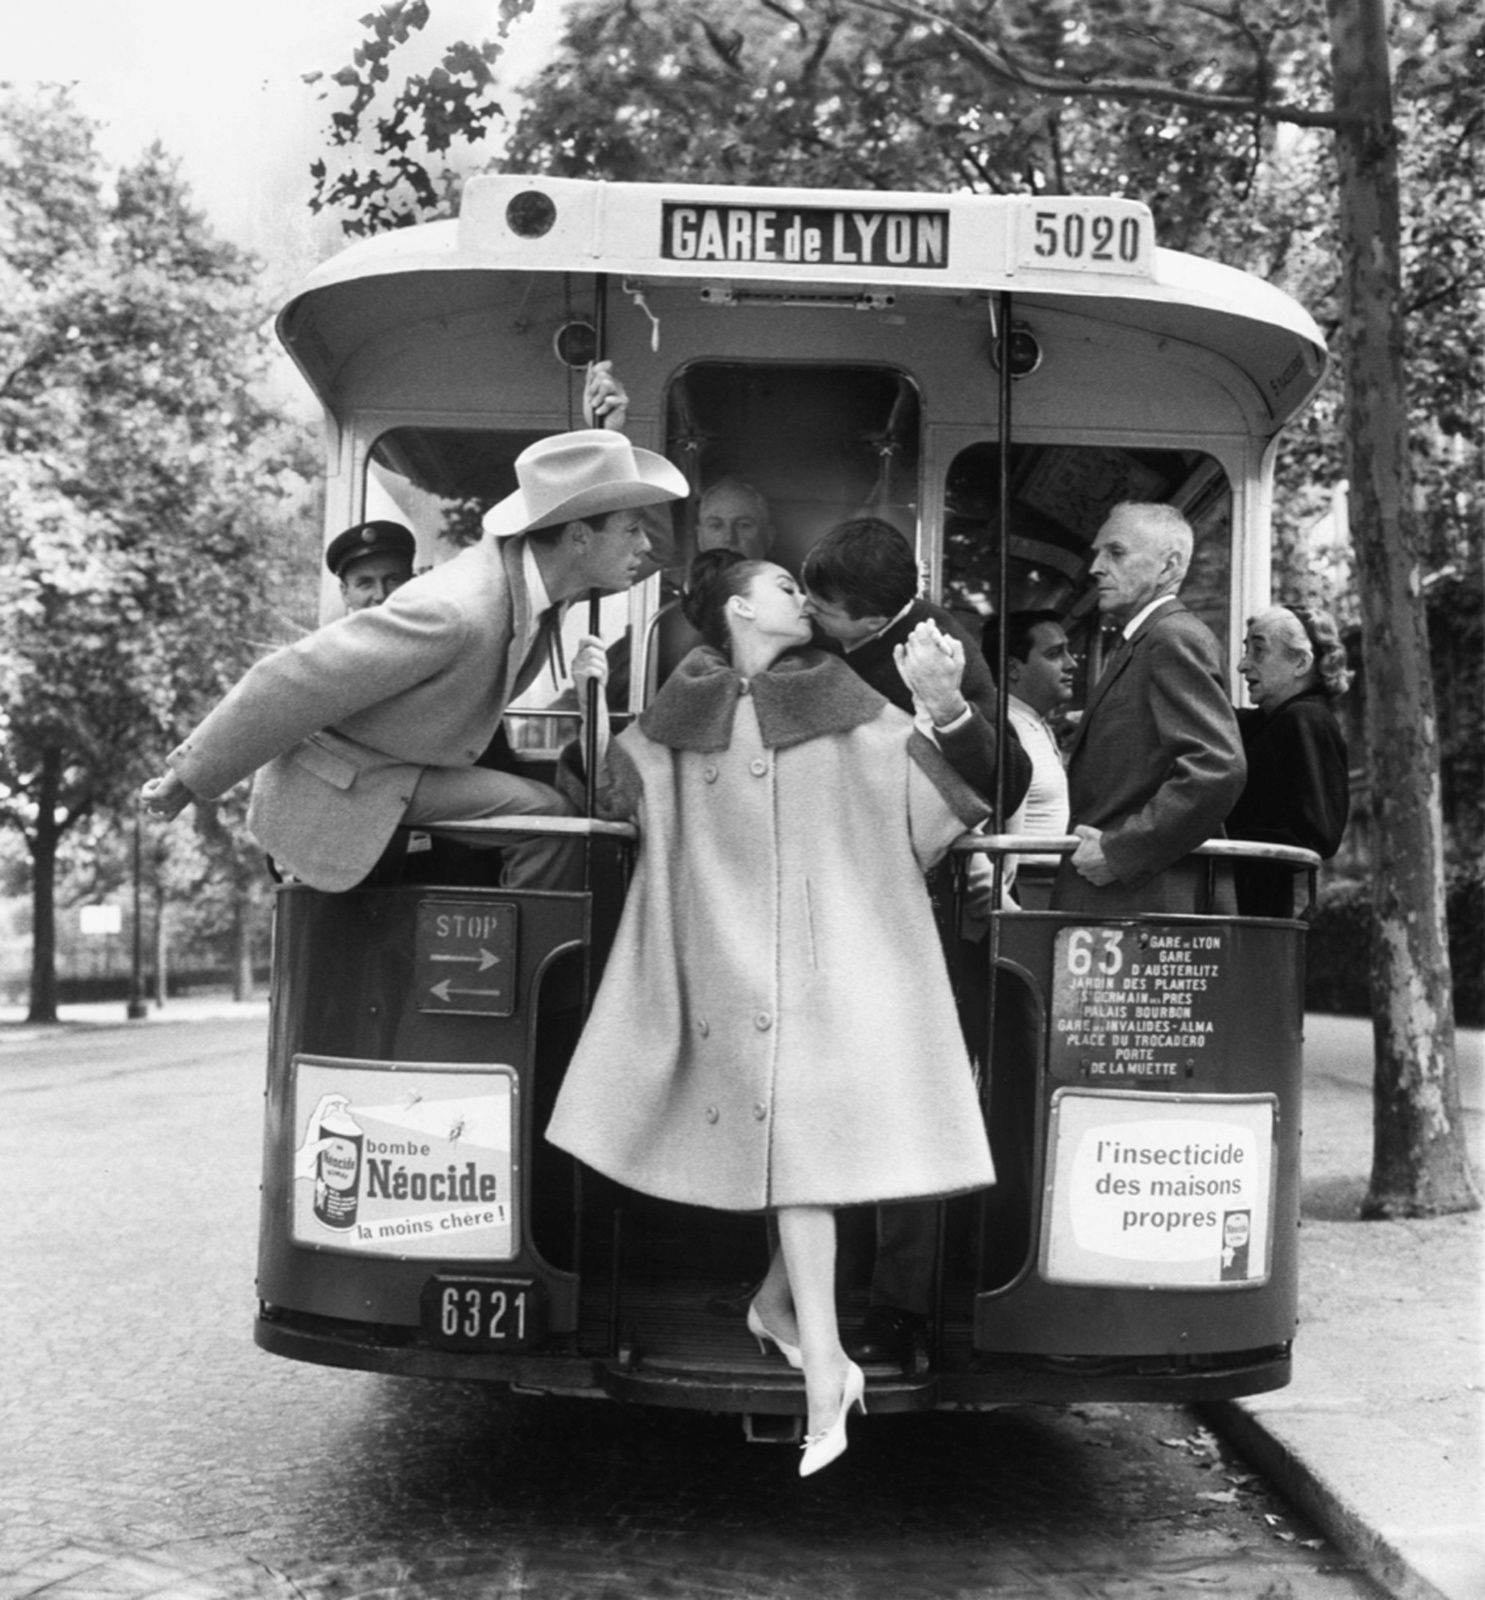 """Hepburn,Ferrer et B. Keaton ""PARIS Pursuit"" pour Harper's Bazaar"", 1959 de Richard AVEDON - Courtesy Fondation Avedon"